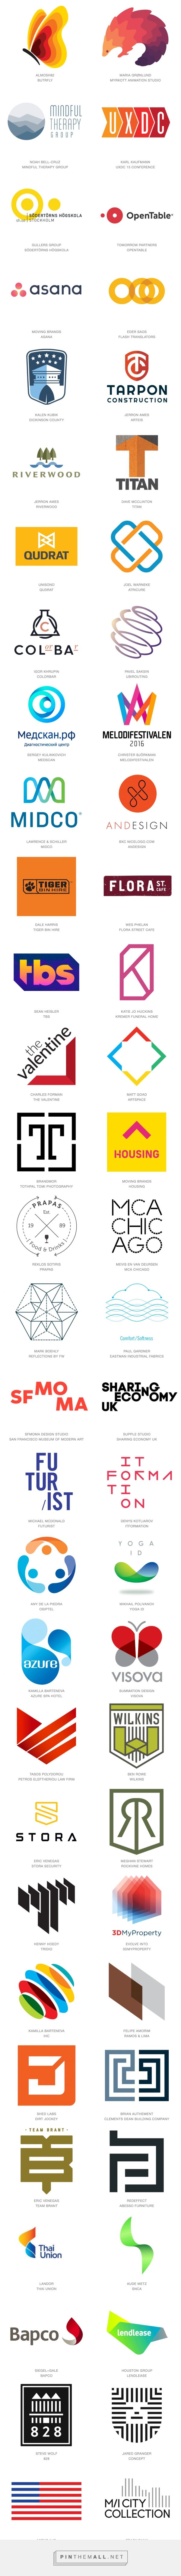 2016 Logo Trends | LogoLounge: Ombré, Circles, Half and Half, Linked, Stimming, Dog Eared, Corners, Line Dash, Off Shift, Curls, Pocket Shield, Slices, Letter Block, Benders, Bars